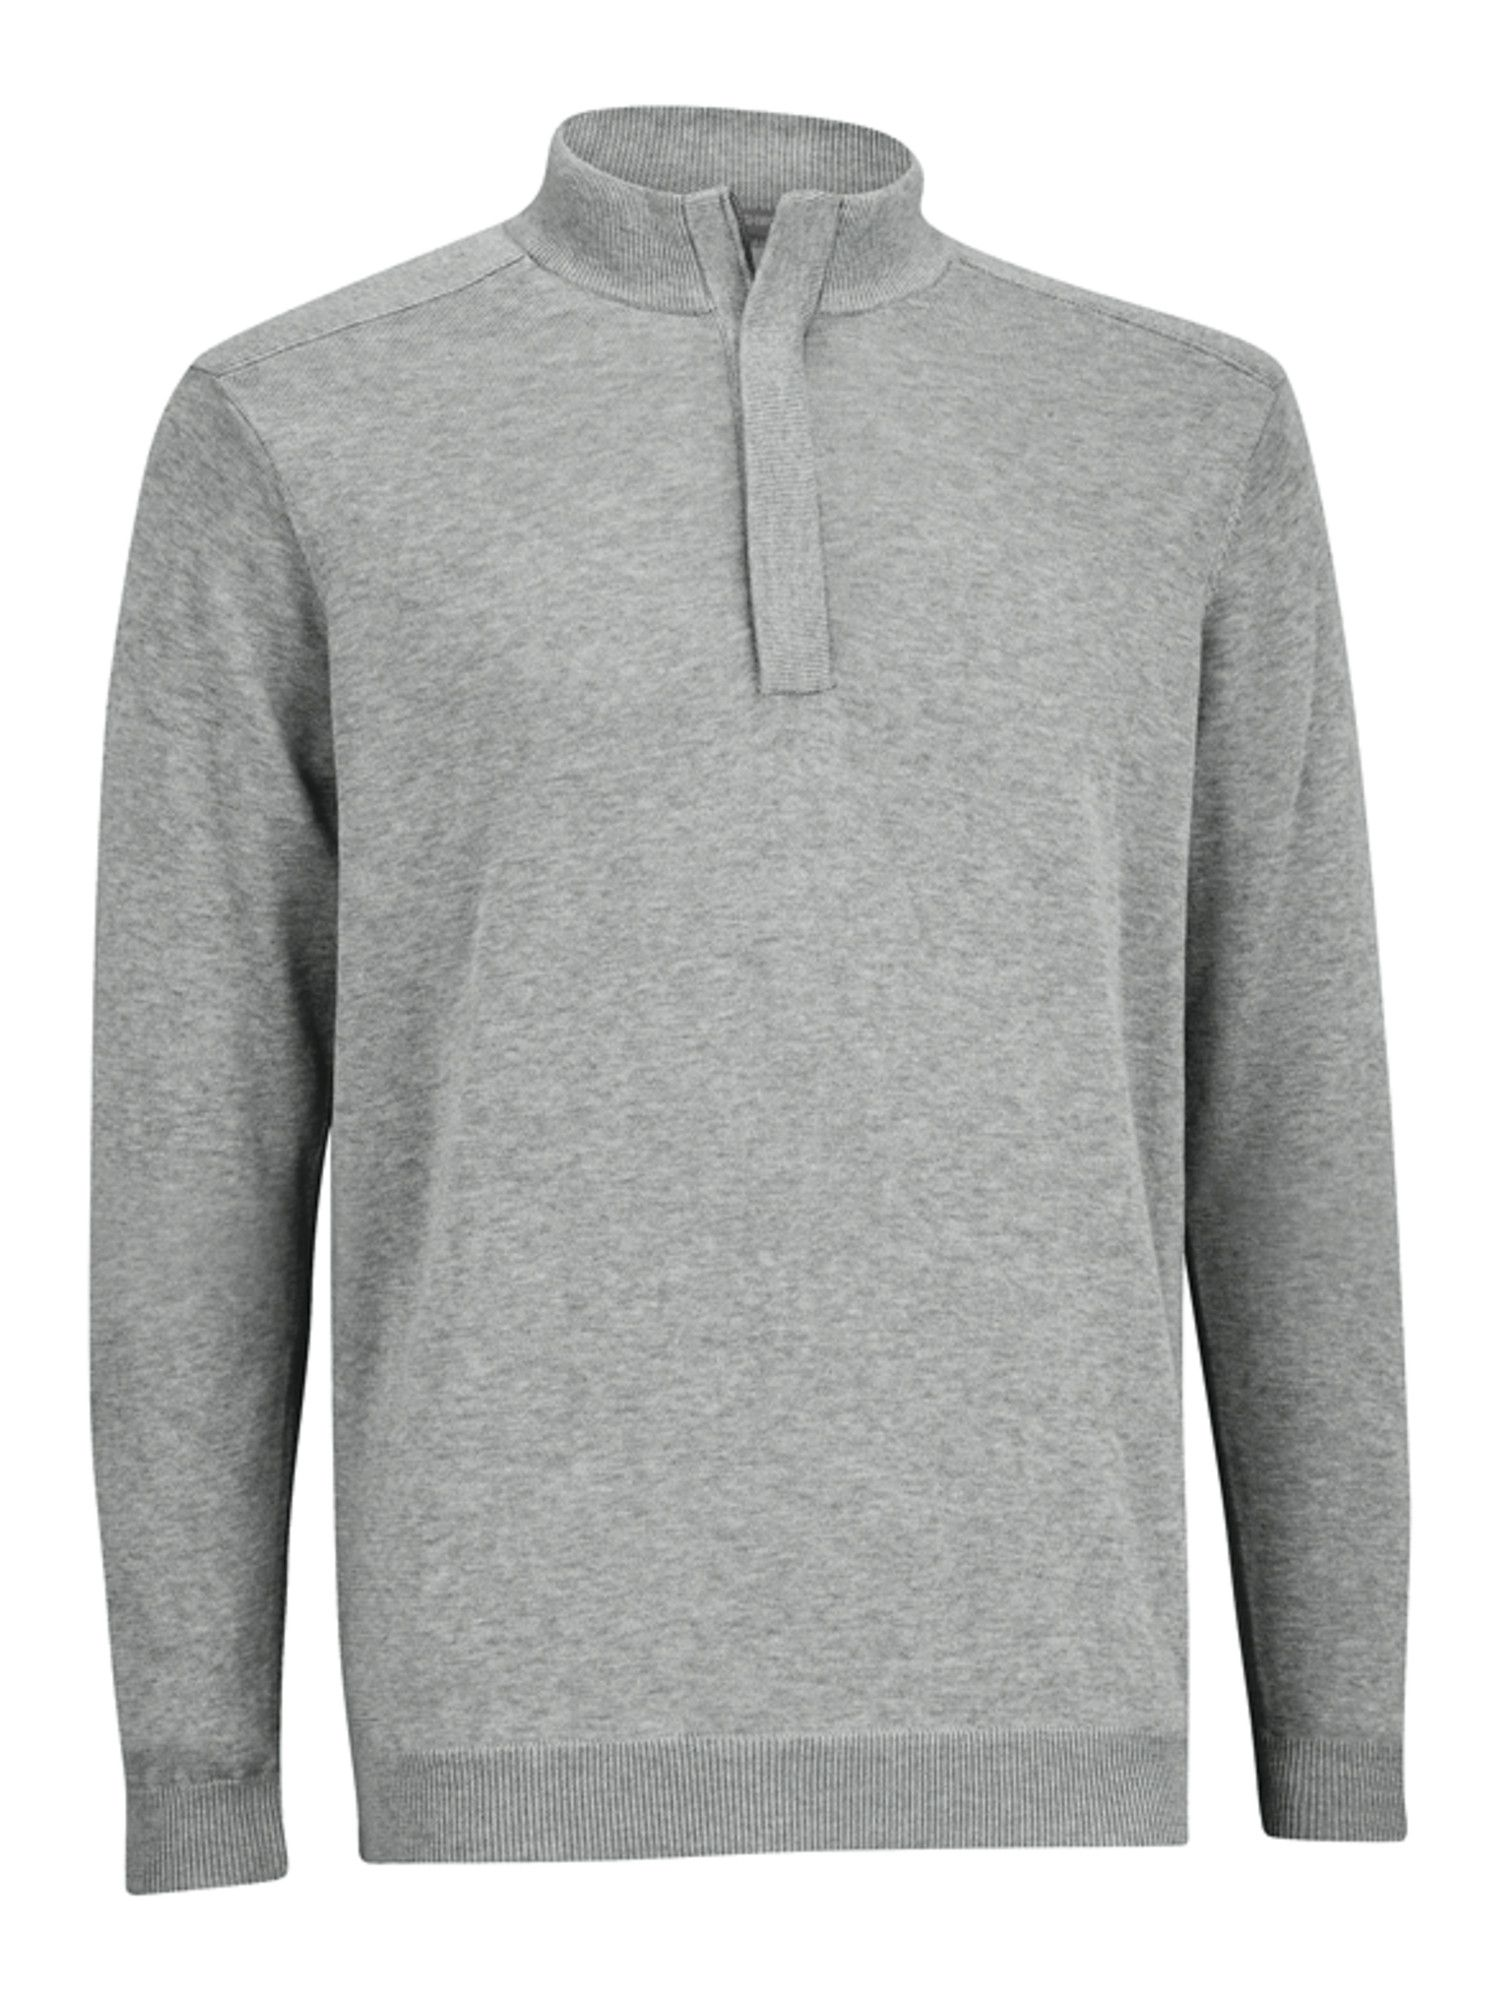 Performance half-zip wind sweater